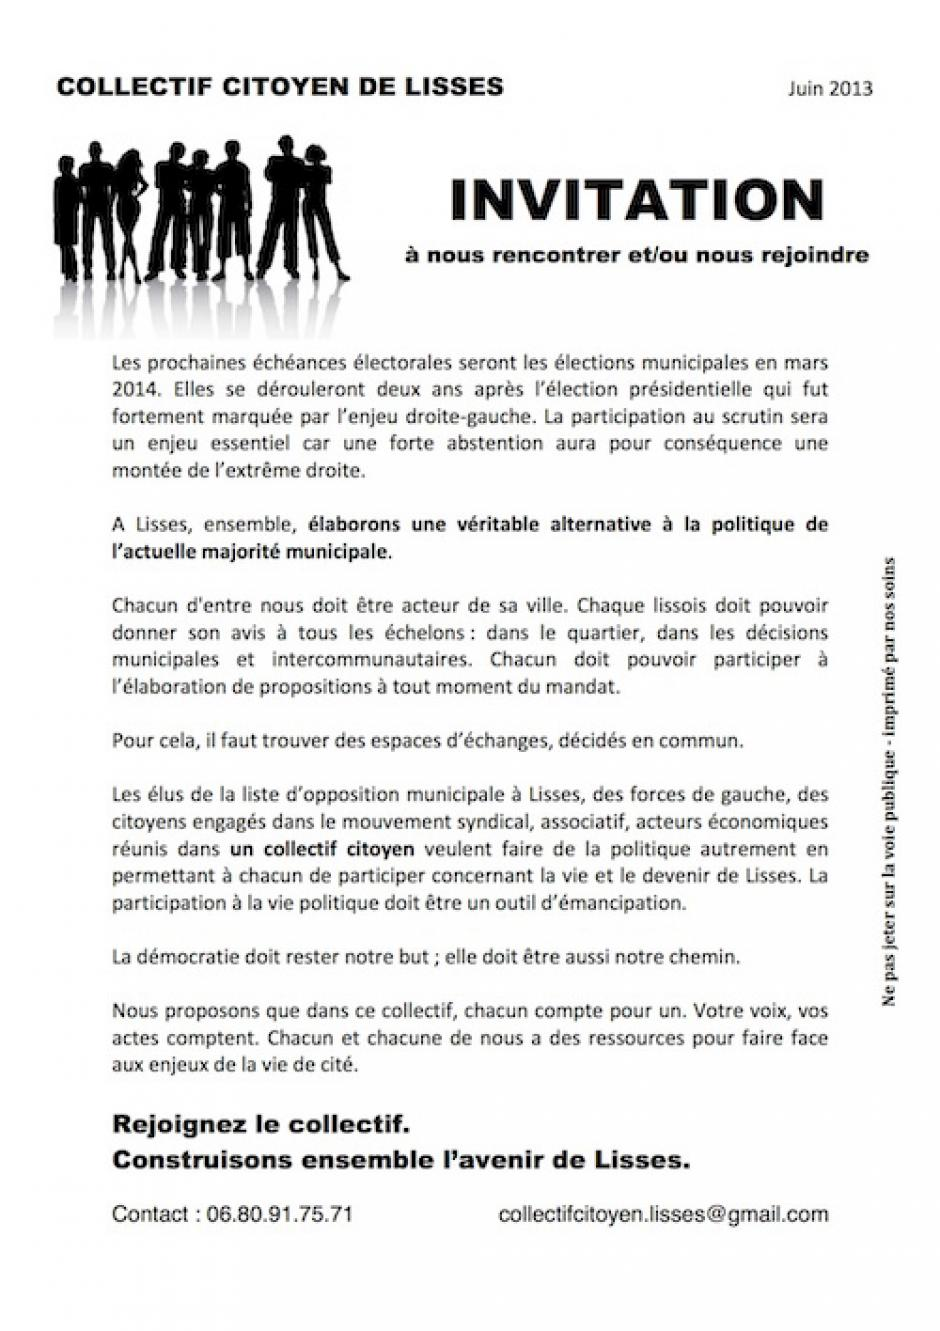 INVITATION DU COLLECTIF CITOYEN DE LISSES